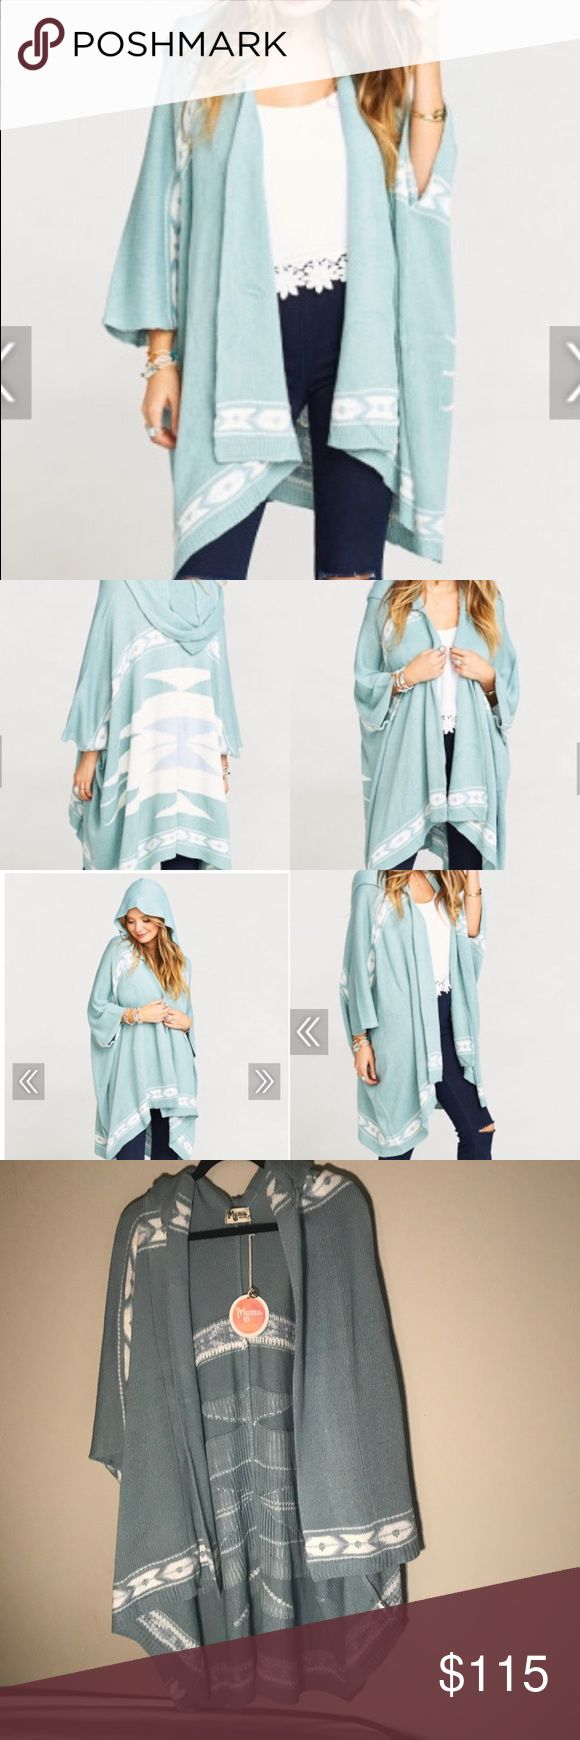 """NWT Show Me Your Mumu Cardi Hoodie Sequoia M ❤️ ✨currently listed at $158 elsewhere✨ This is legitimately the cutest sweater I've EVER bought, and I'm a SWEATER ADDICT.  NWT size M Cardi hoodie in Sequoia from Show Me Your Mumu.  Great for winter and cozy hot chocolate Hallmark movie sessions!   100% polyester. Hooded long sweater. 35"""" long at mid back. ♥️ Show Me Your MuMu Sweaters Cardigans"""